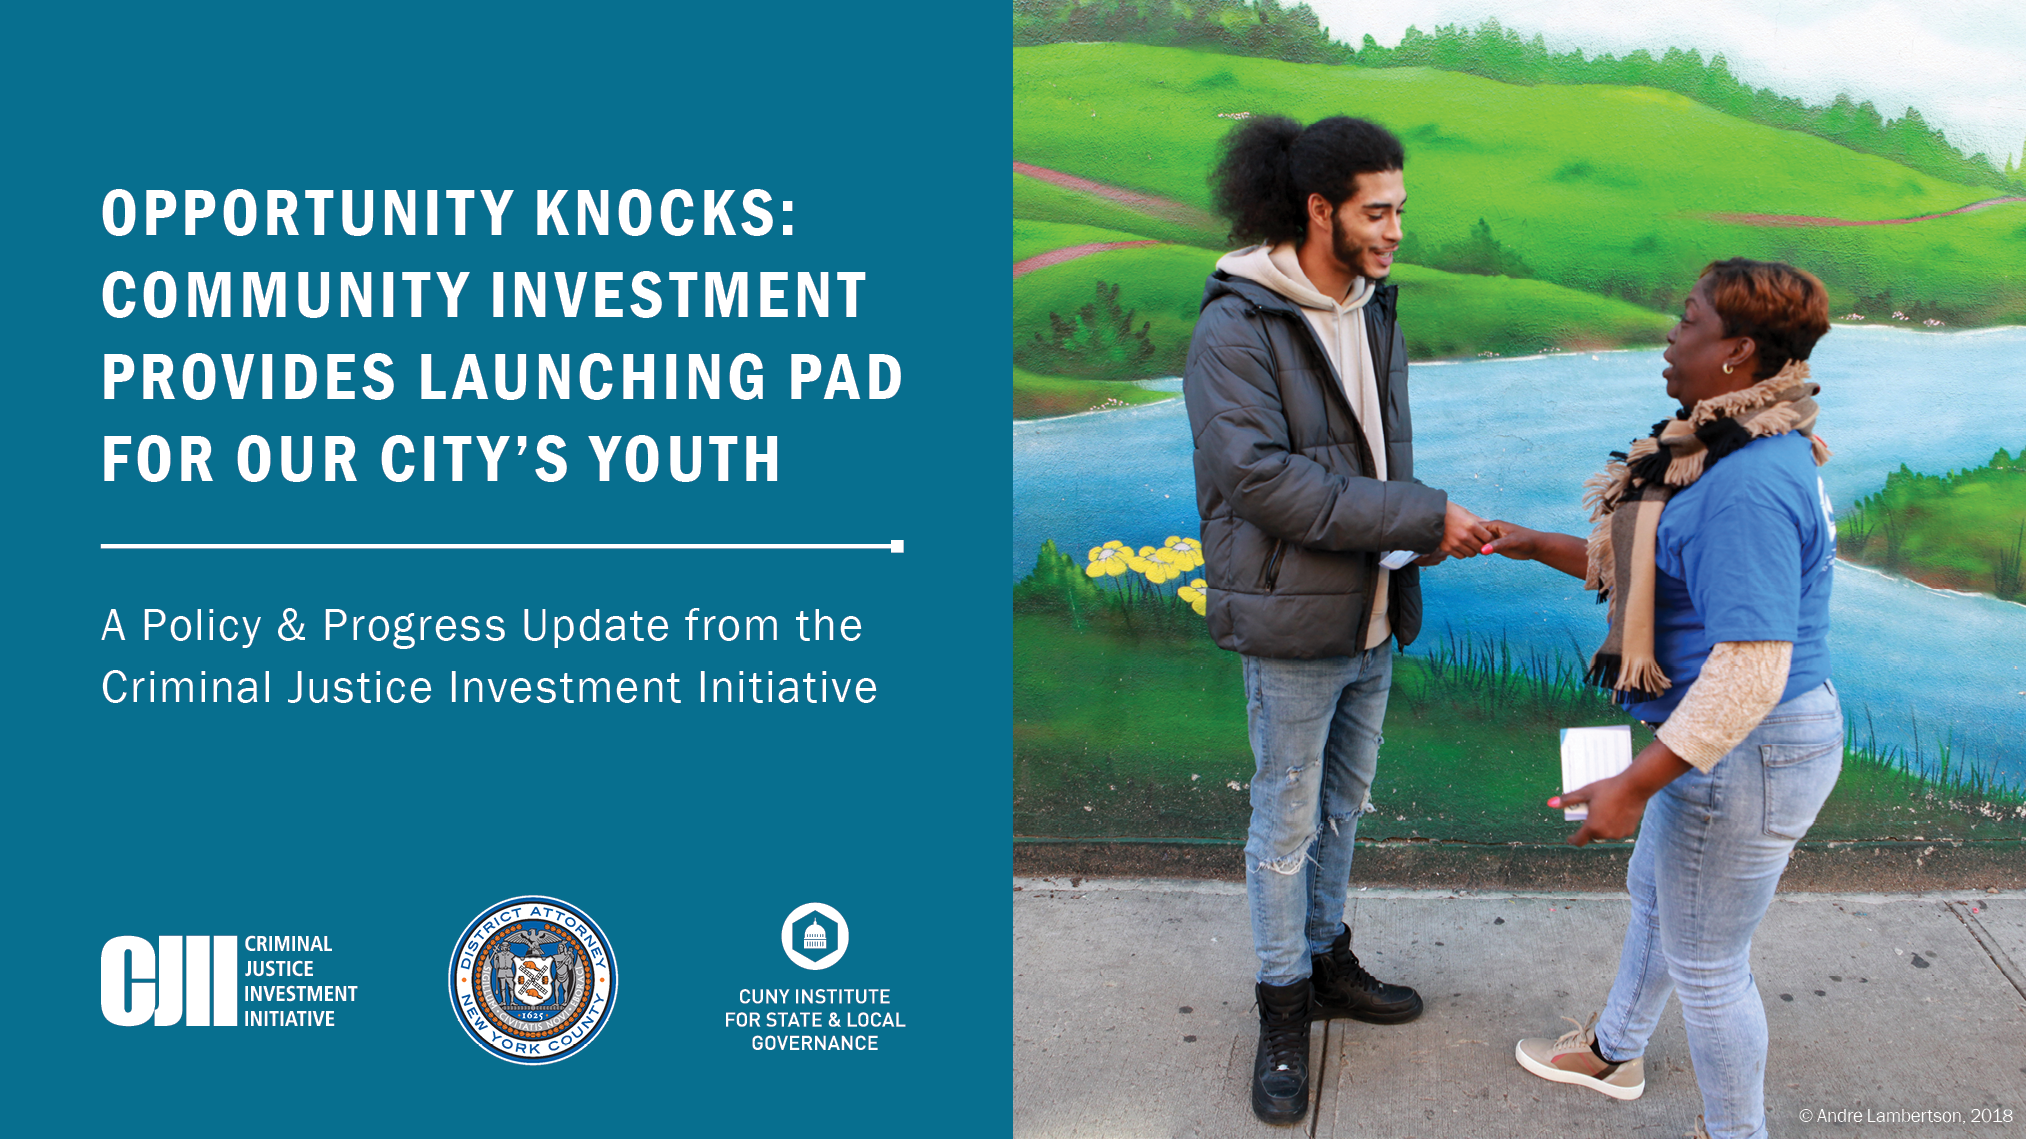 Opportunity Knocks: Community Investment Provides Launching Pad for Our City's Youth